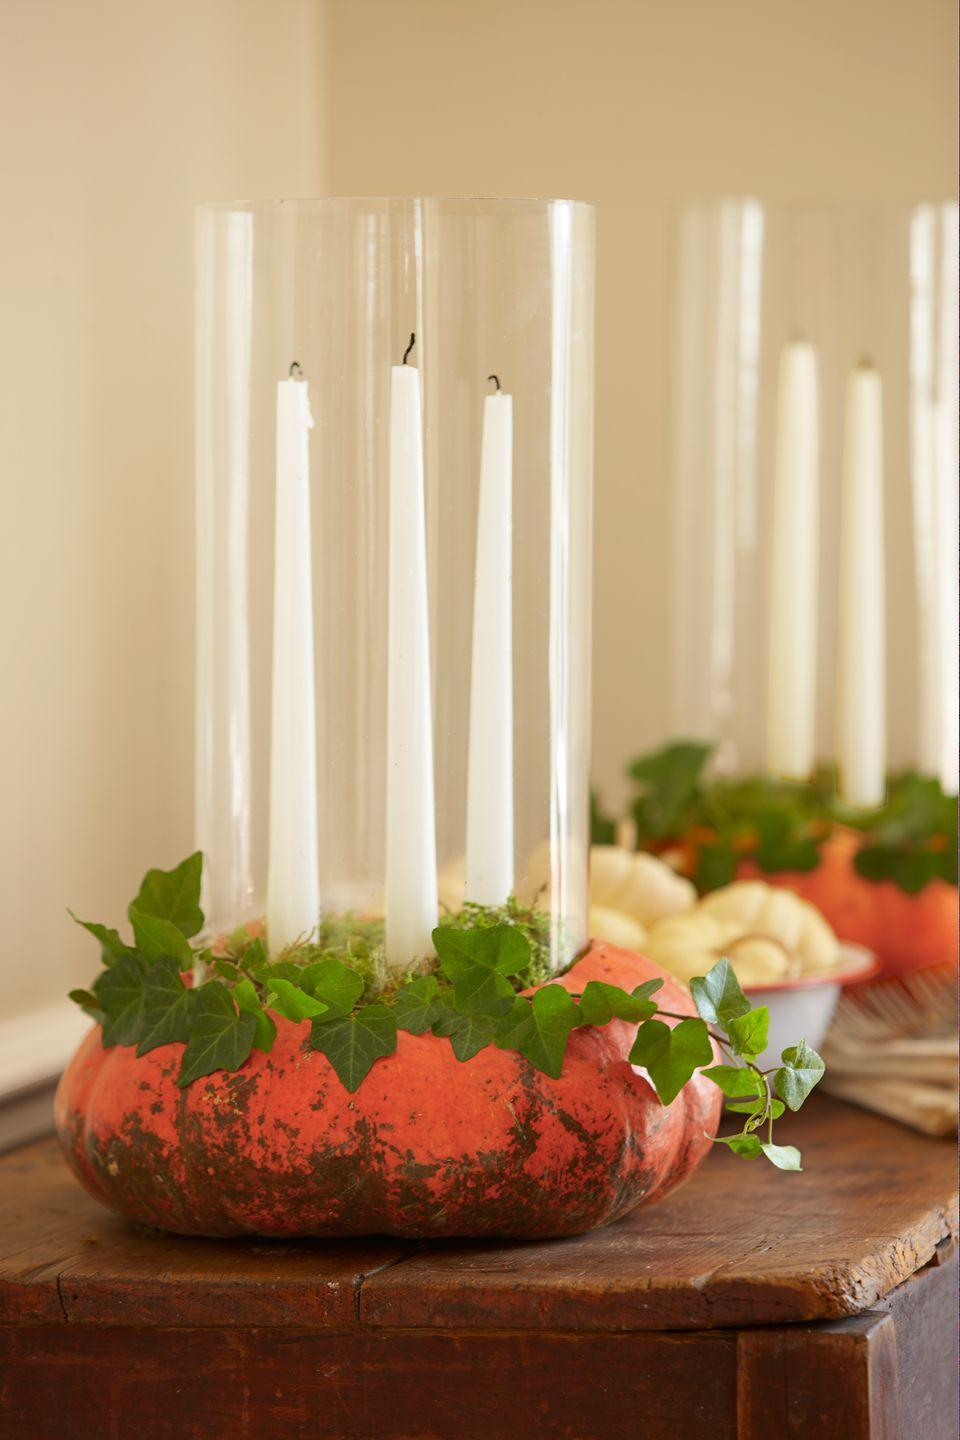 """<p>Set the mood by scooping out a Cinderella pumpkin and sticking tapered candles inside. </p><p><a class=""""link rapid-noclick-resp"""" href=""""https://www.amazon.com/CandleNScent-Taper-Candles-Tapered-Candlesticks/dp/B07YDYWS3N/ref=sr_1_4?tag=syn-yahoo-20&ascsubtag=%5Bartid%7C10055.g.1681%5Bsrc%7Cyahoo-us"""" rel=""""nofollow noopener"""" target=""""_blank"""" data-ylk=""""slk:SHOP TAPER CANDLES"""">SHOP TAPER CANDLES</a></p>"""